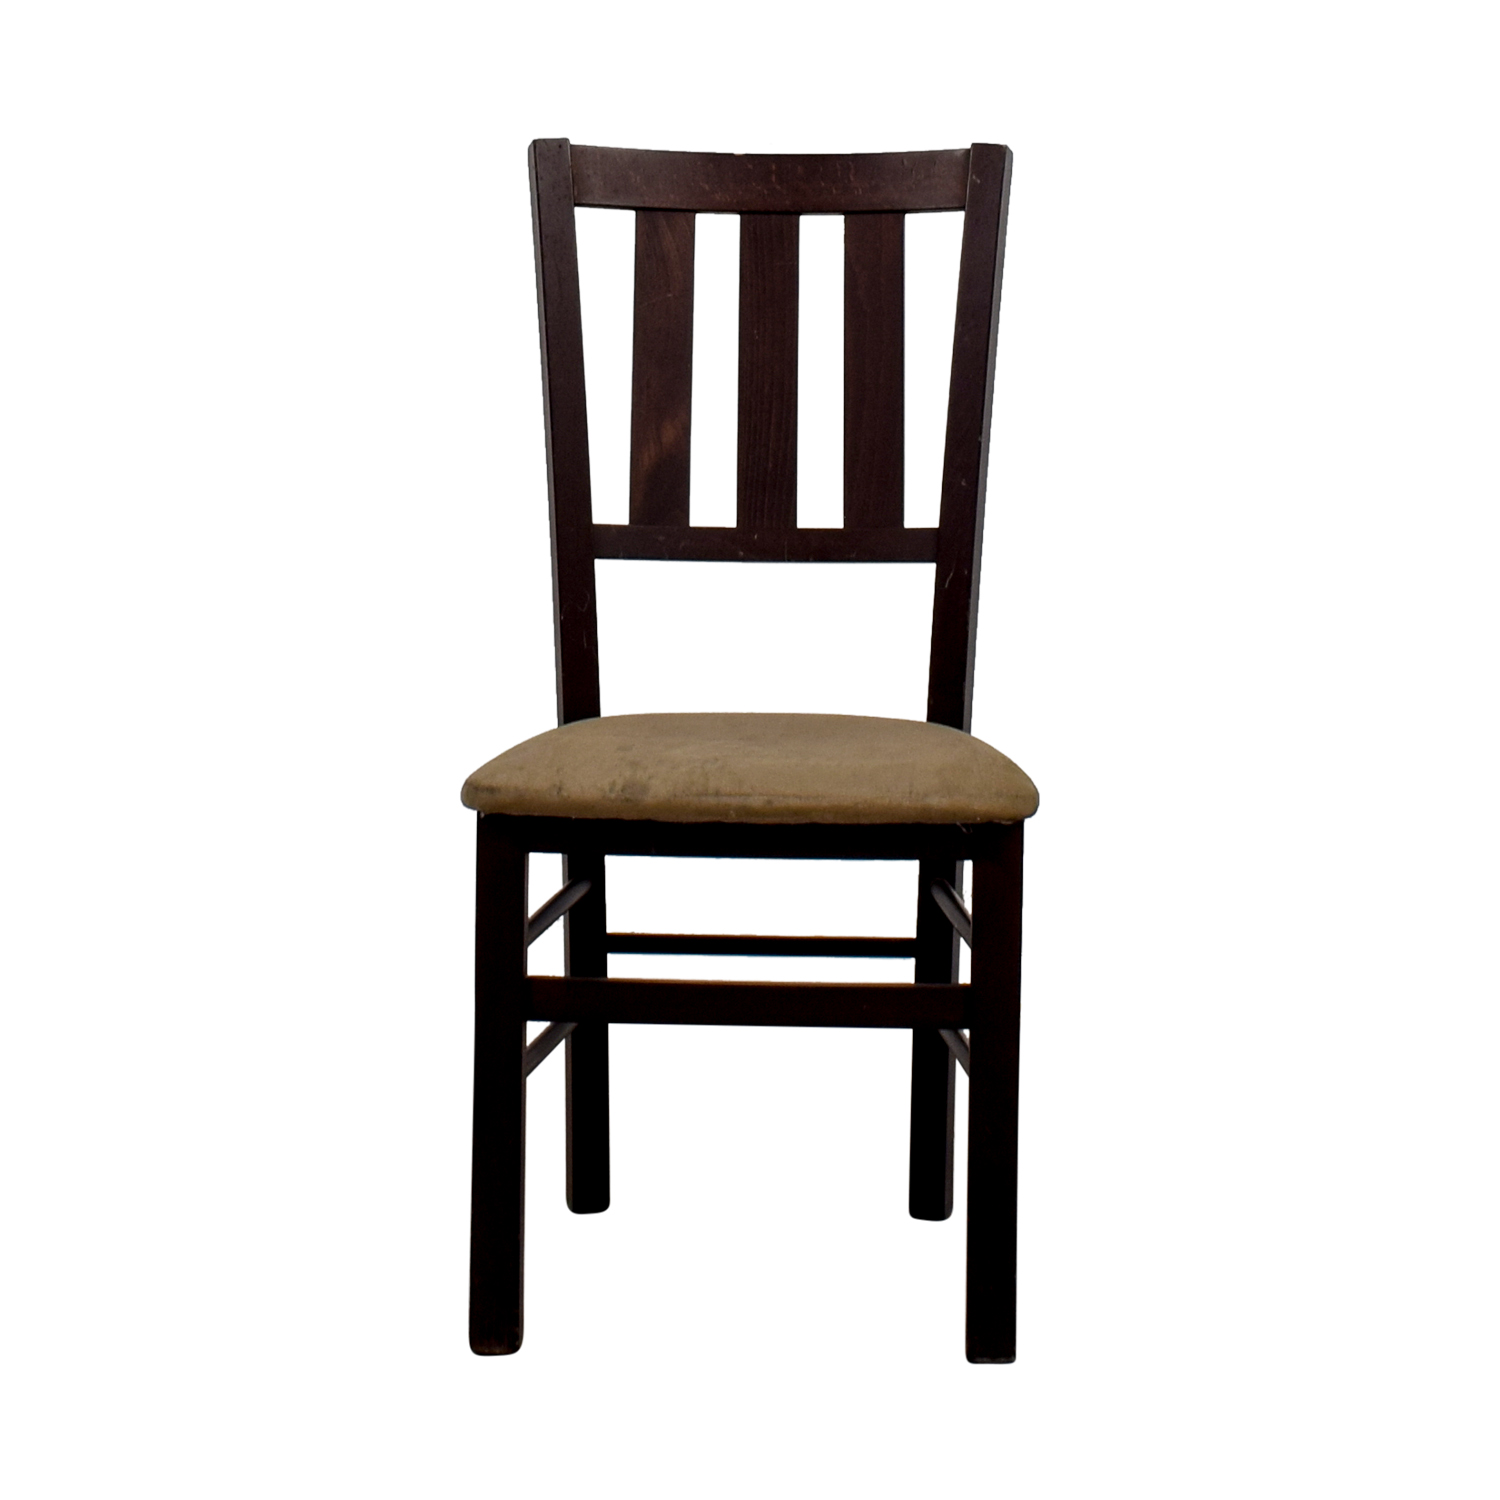 buy Tan and Wood Chair online